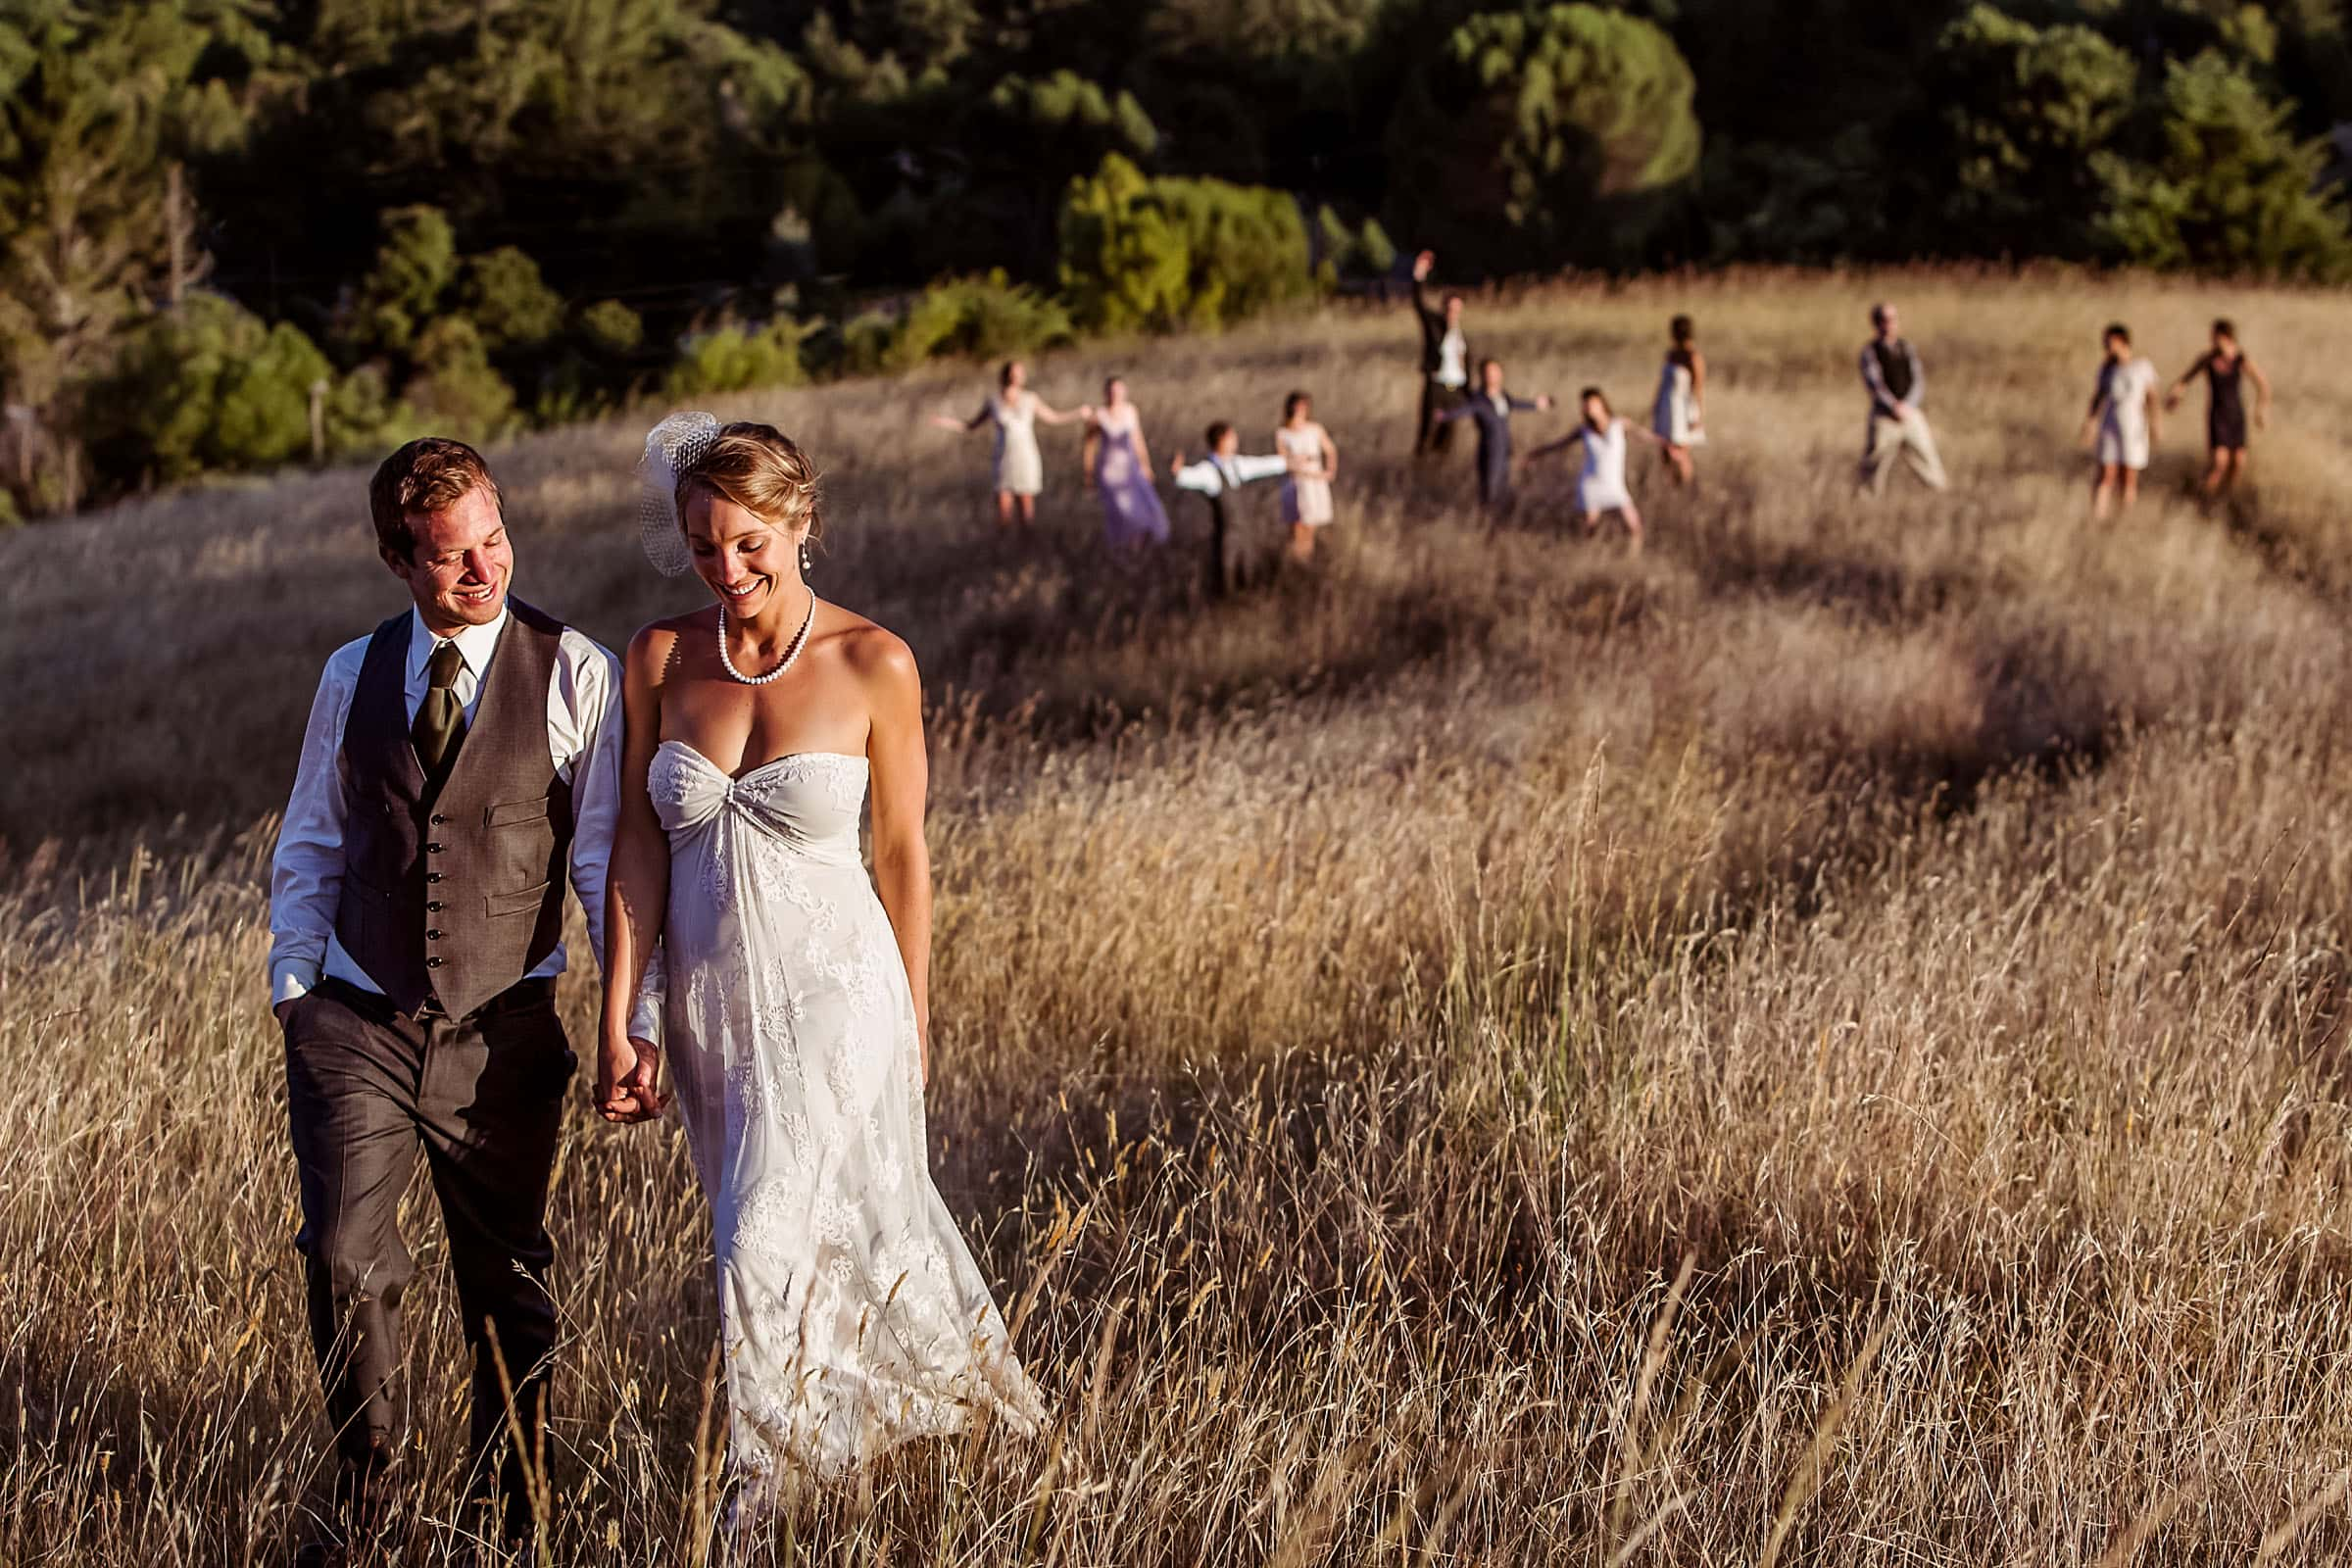 Award winning photo of a bride and groom walking in a field at golden hour with friends celebrating behind them during their Humboldt California wedding at Beginnings Briceland